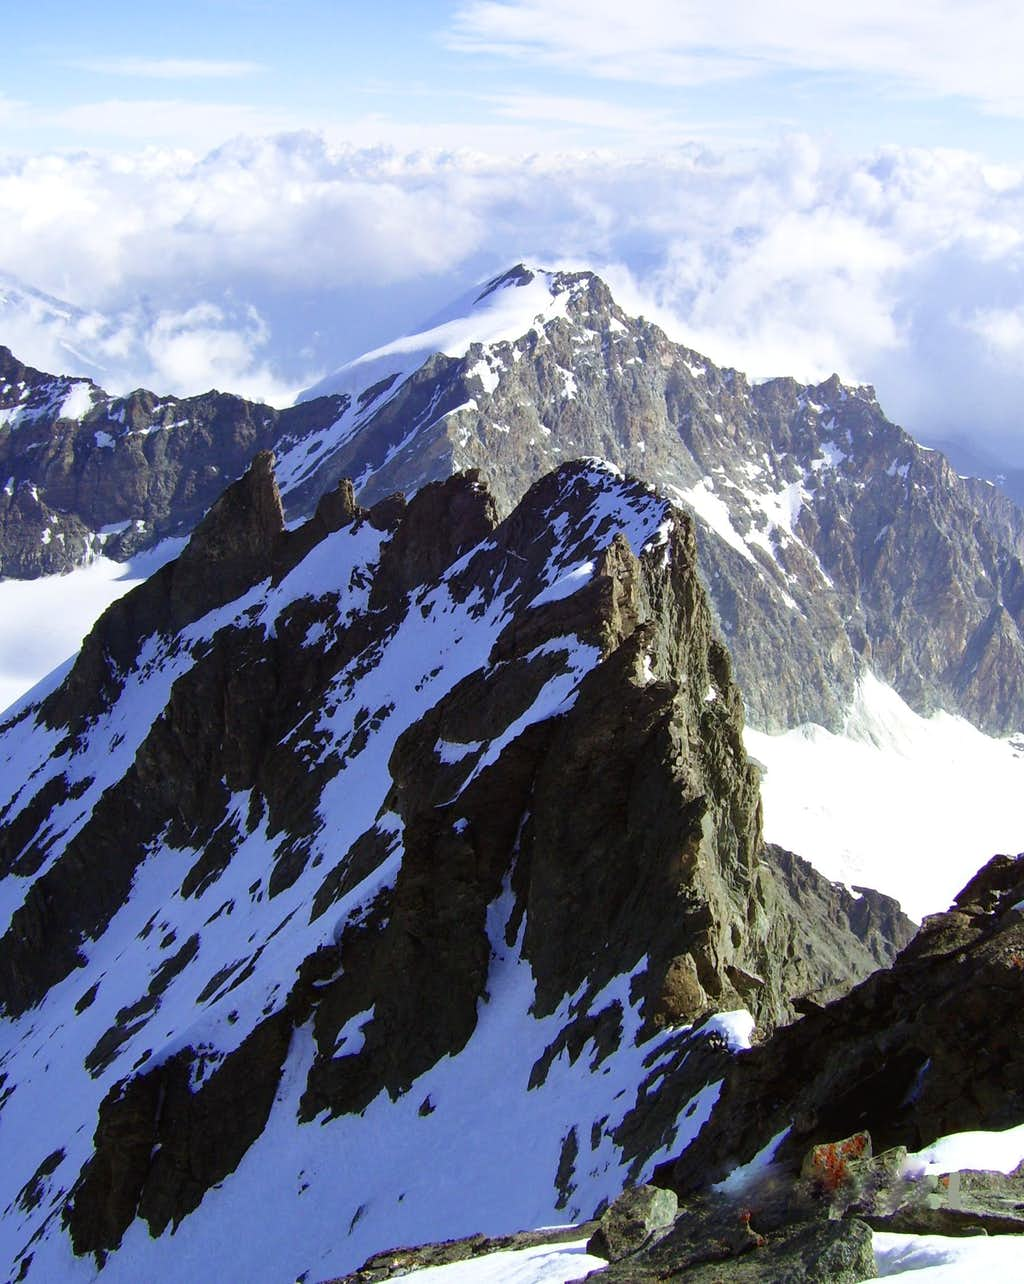 North Ridge of Rimpfischhorn